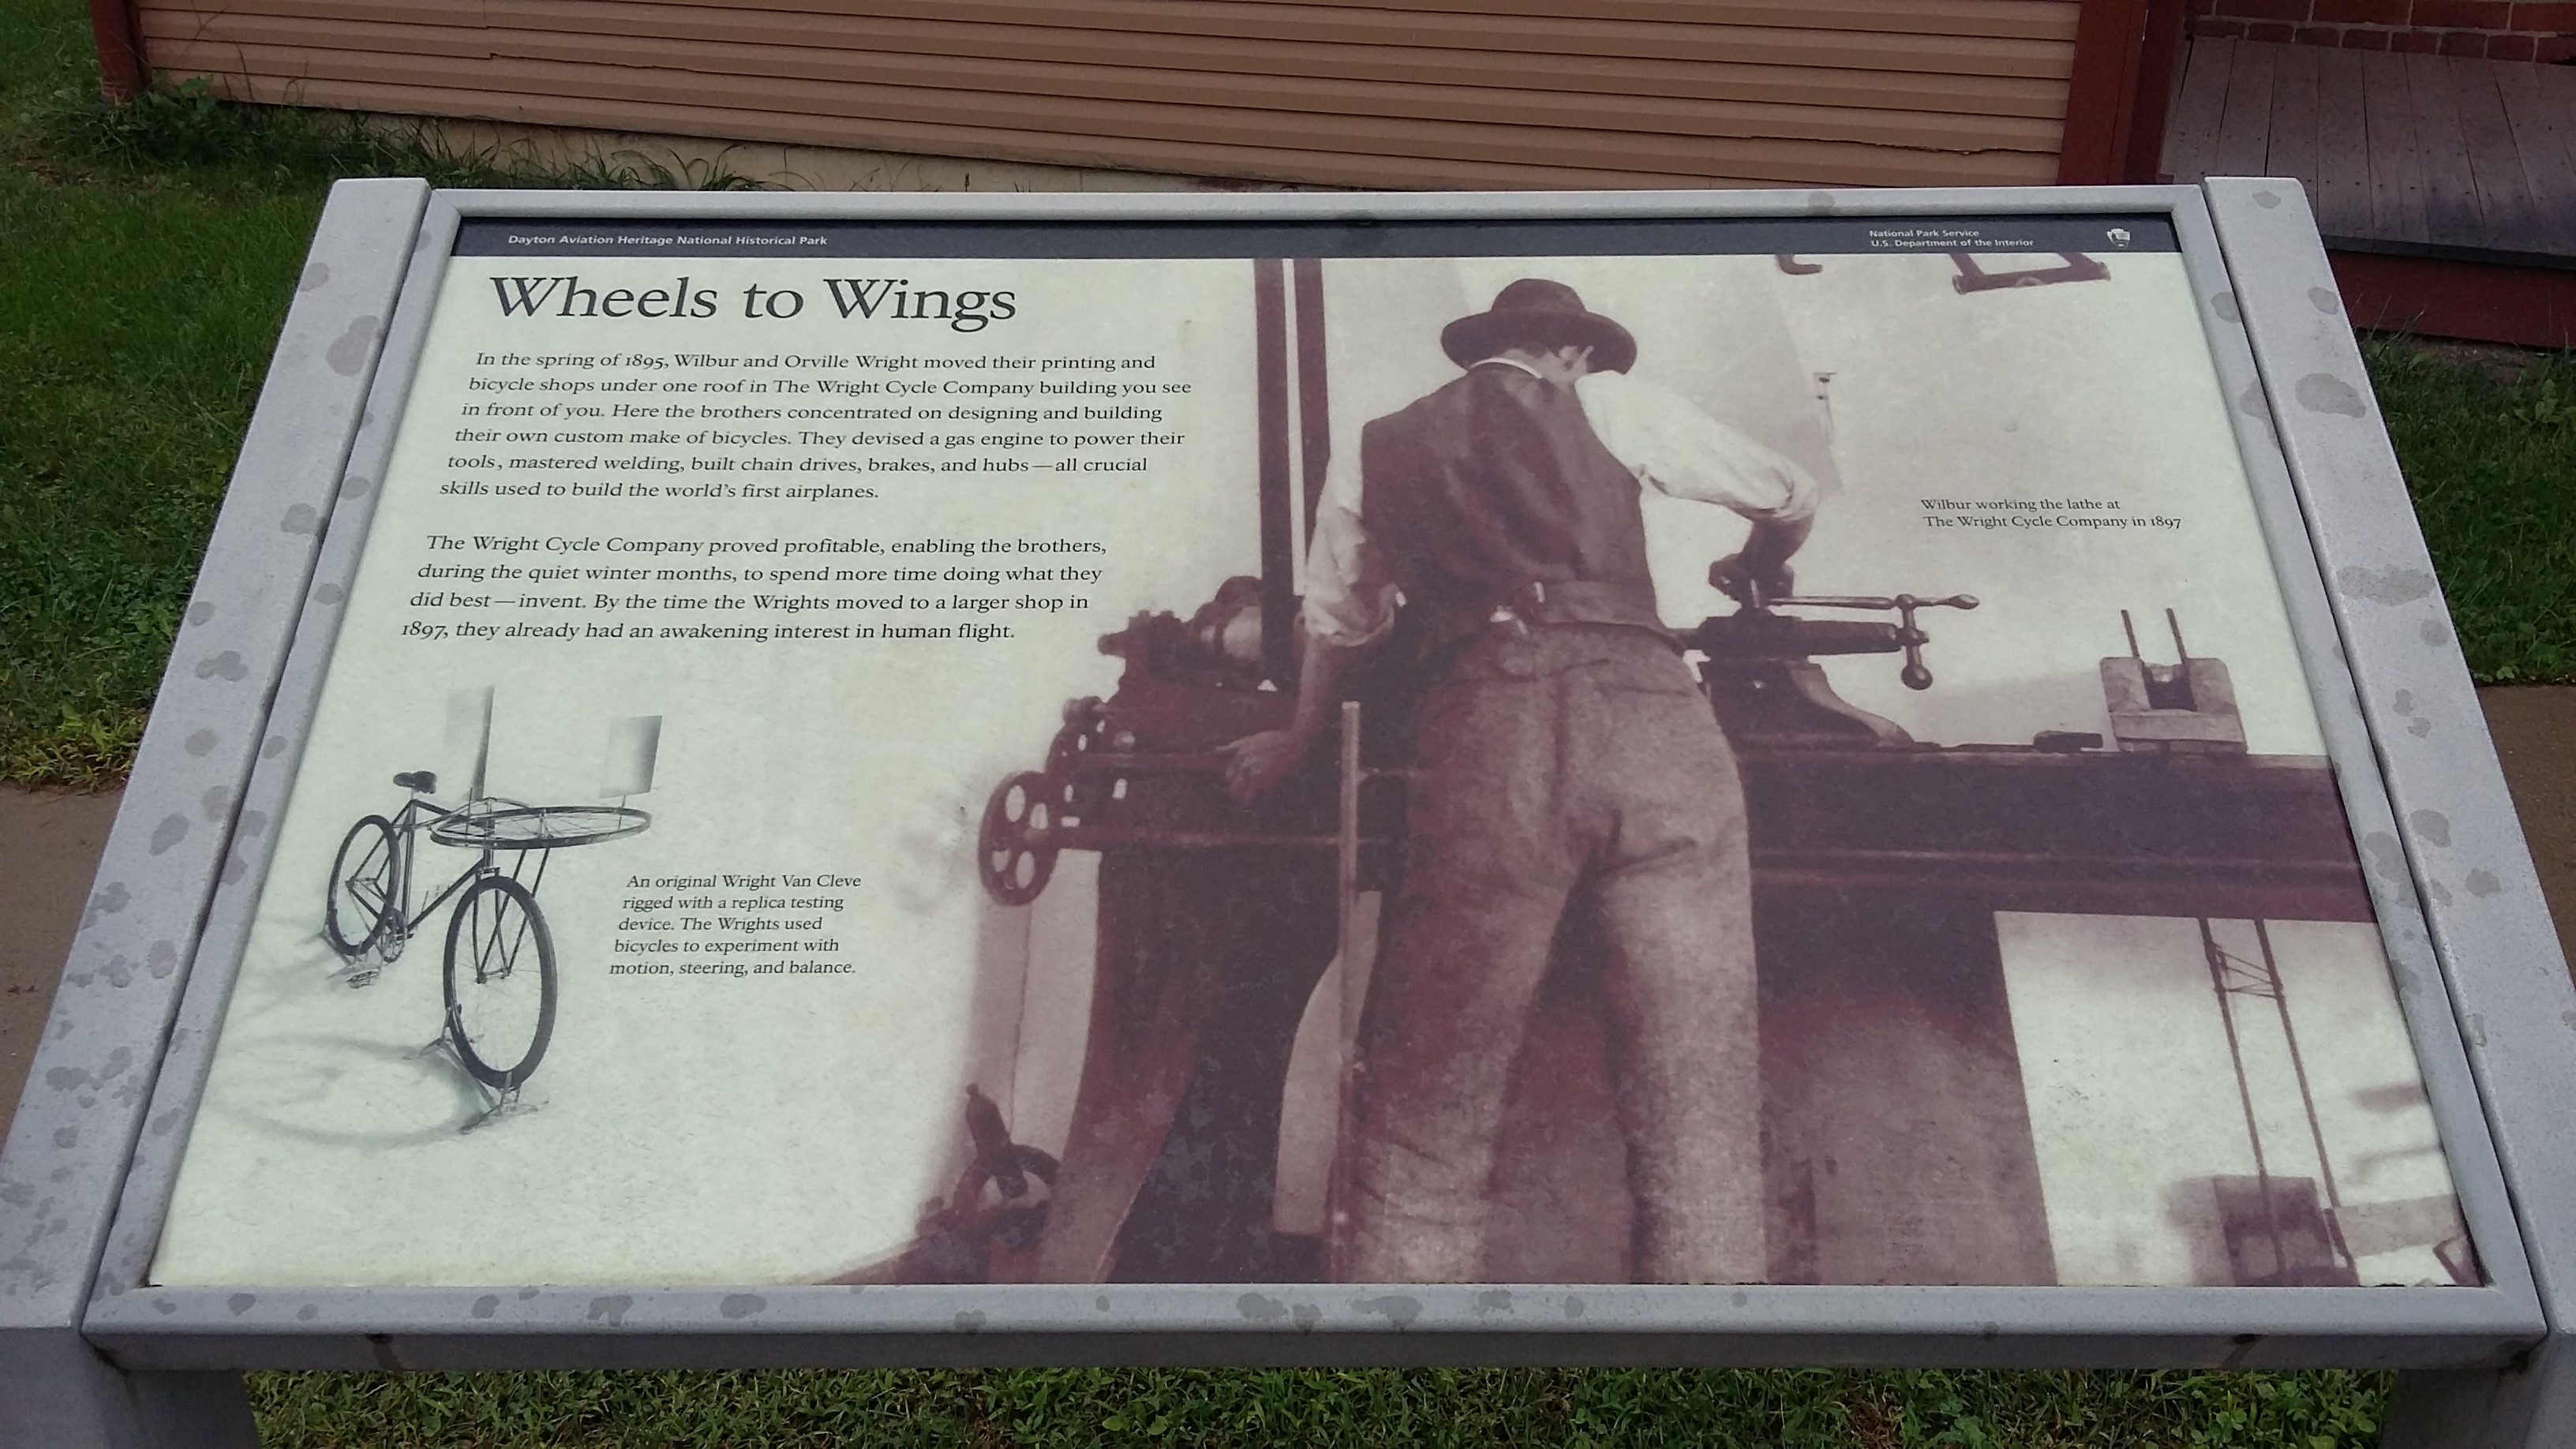 My Visit With The Wright Brothers